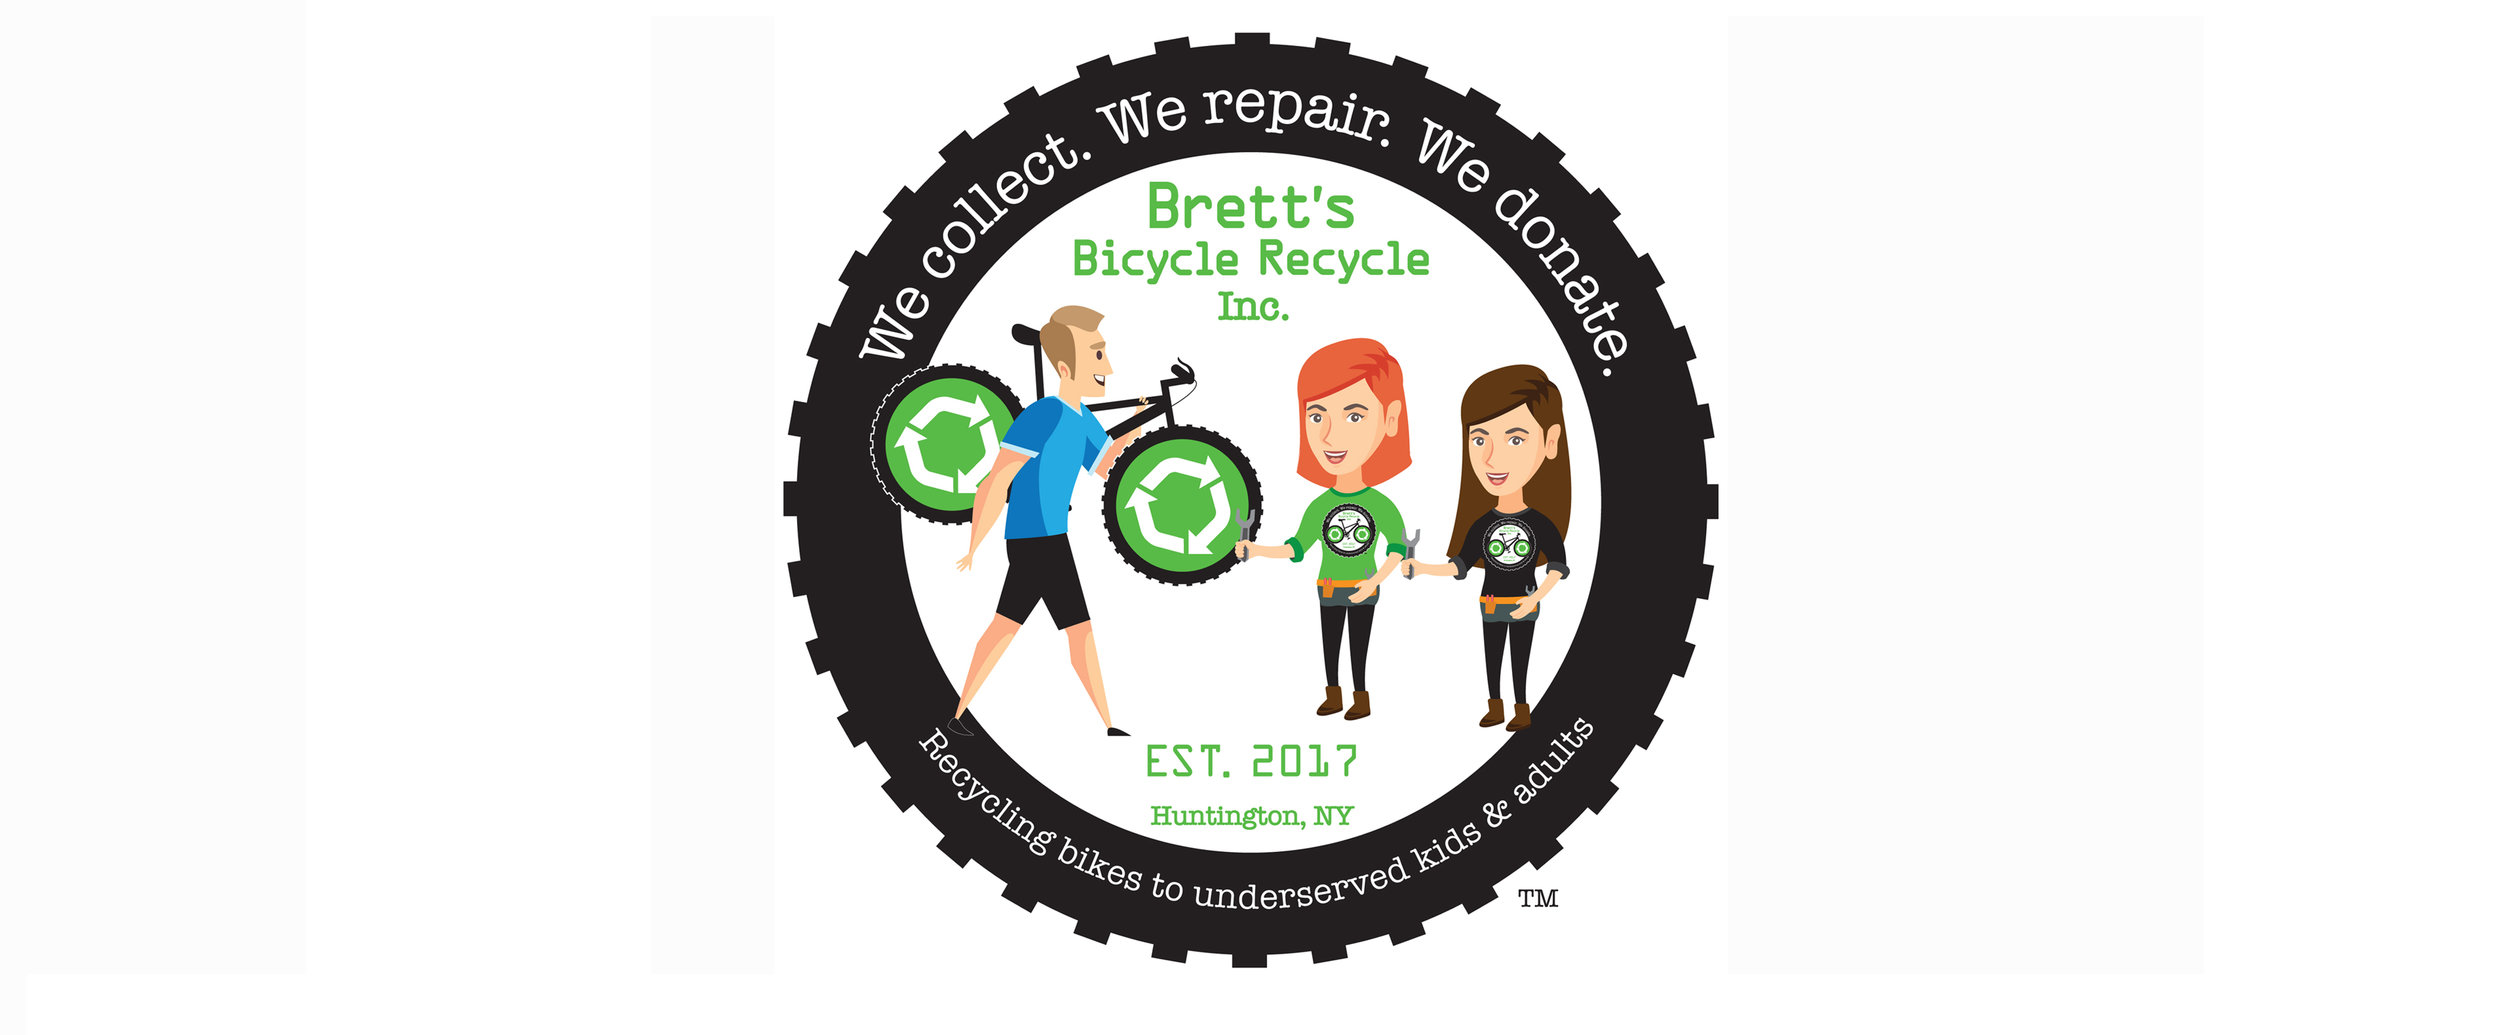 BBR Bike Mechanic Mentor Program Mentor Webpage .jpg